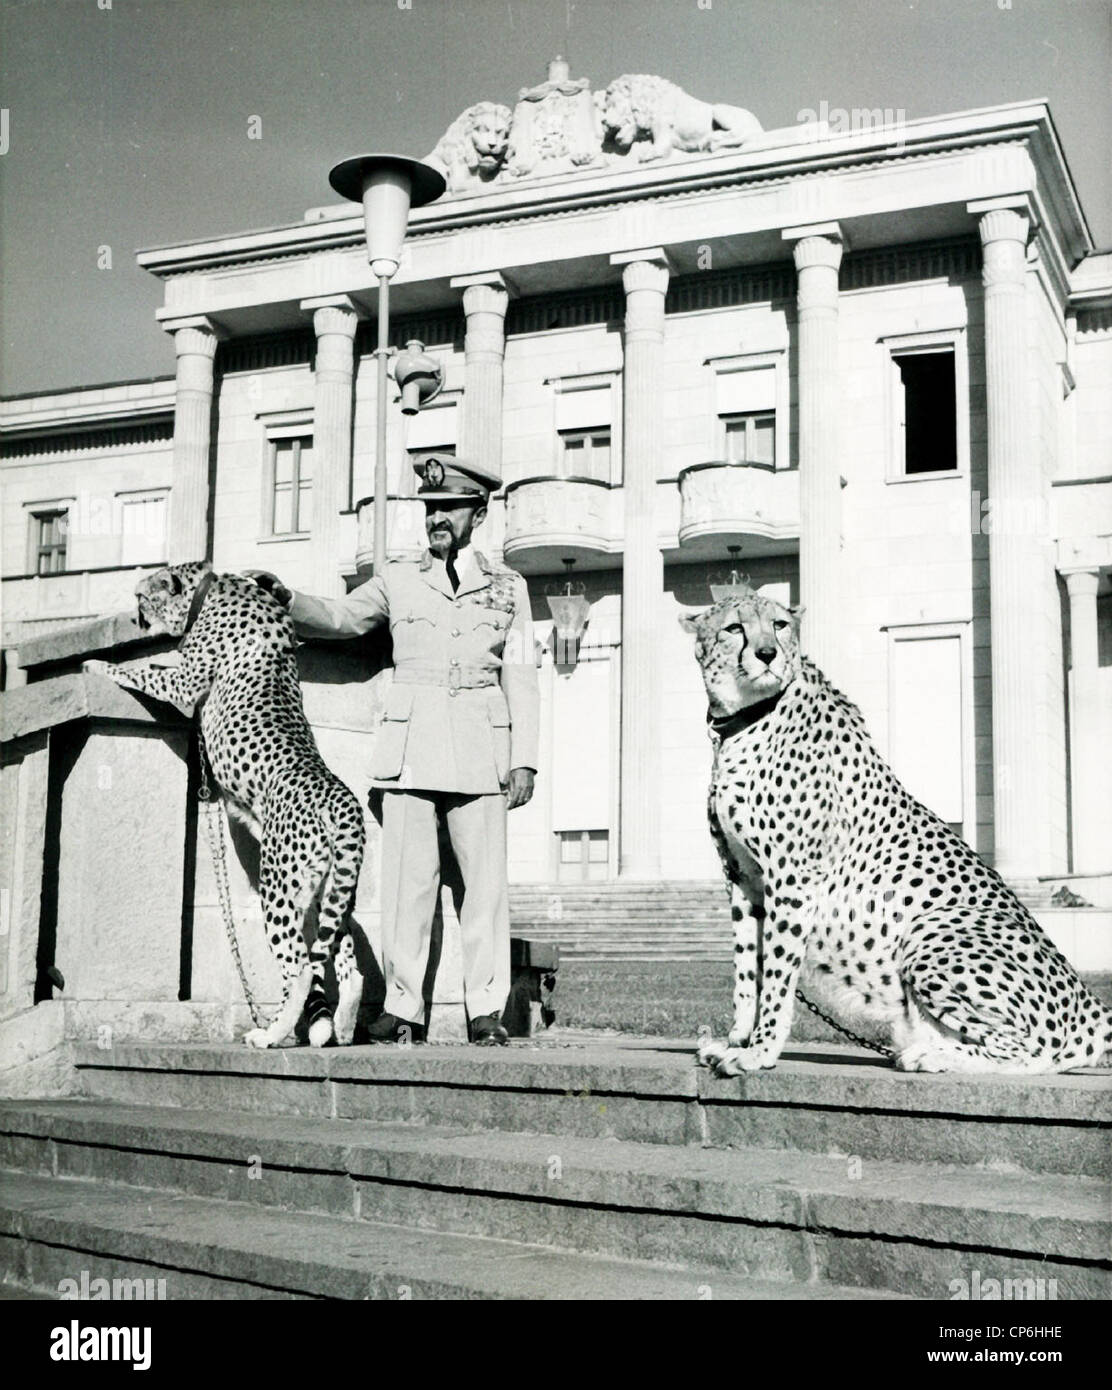 Emperor Haile Selassie of Ethiopia with Pet Cheetahs at Palace Stock Photo